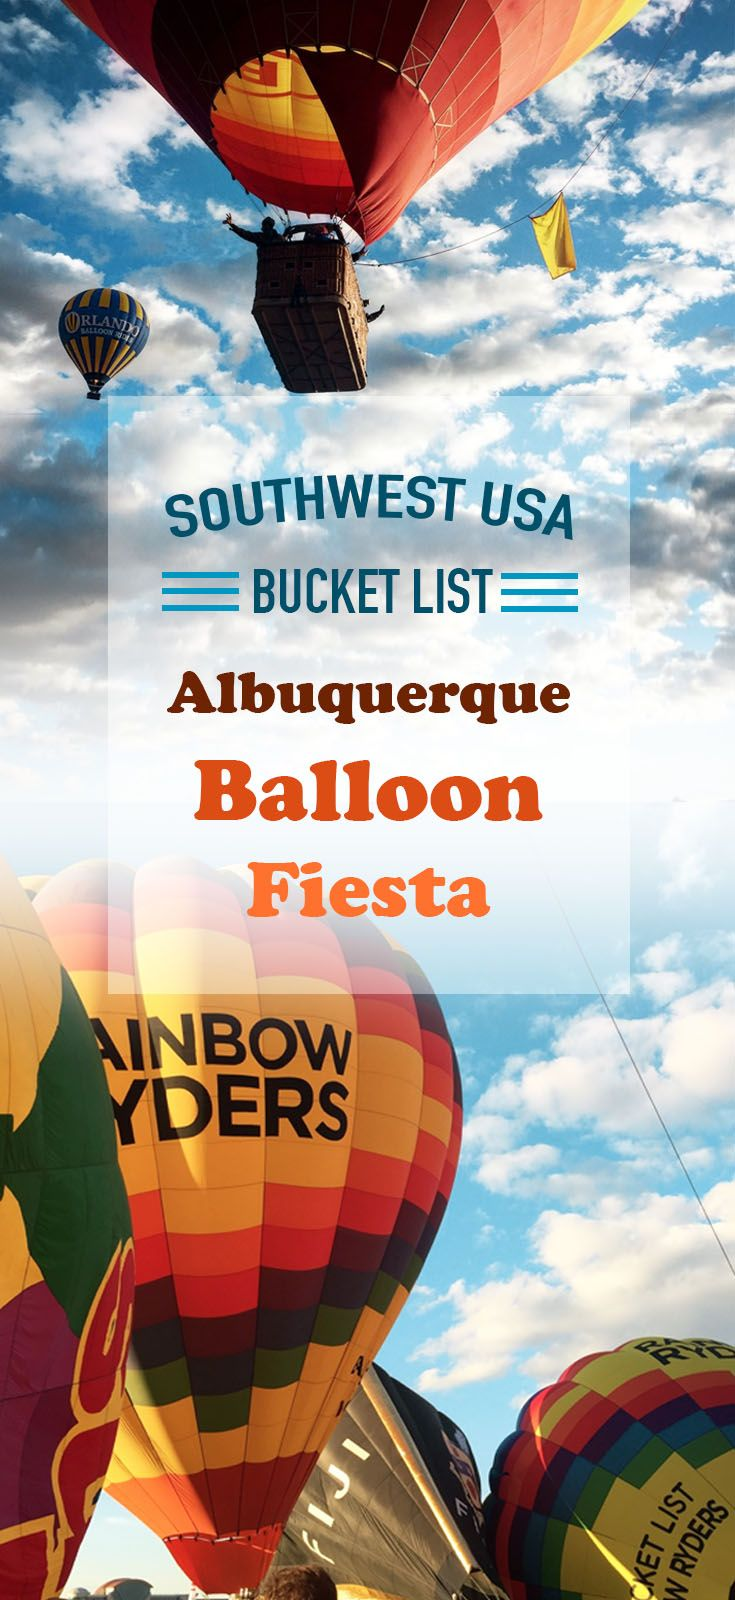 Albuquerque New Mexico is famous for its annual hot air balloon festival, one of the largest in the USA.